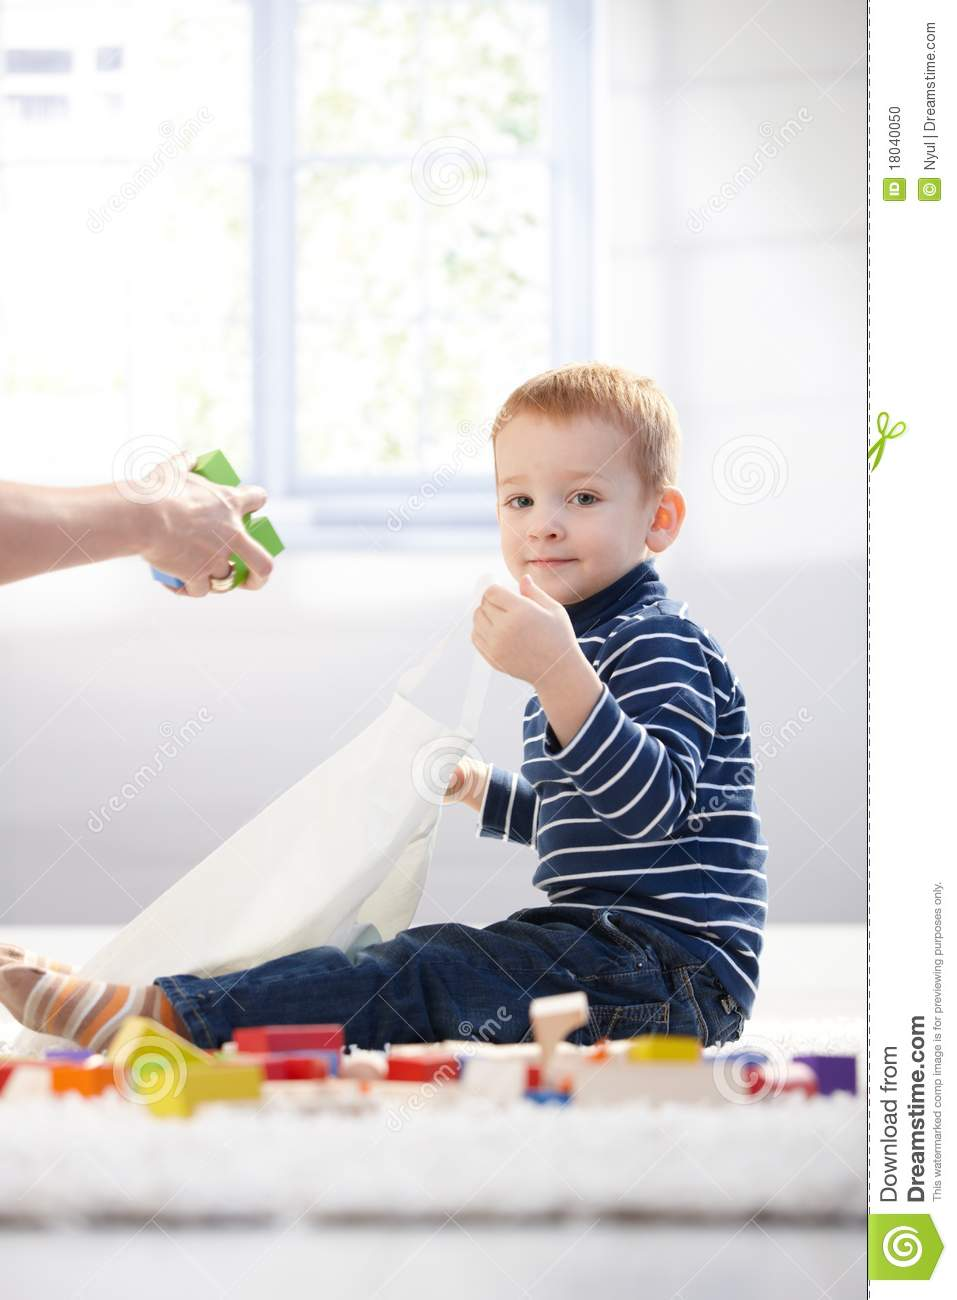 cute kid packing toys to plastic bag stock photo - image of haired